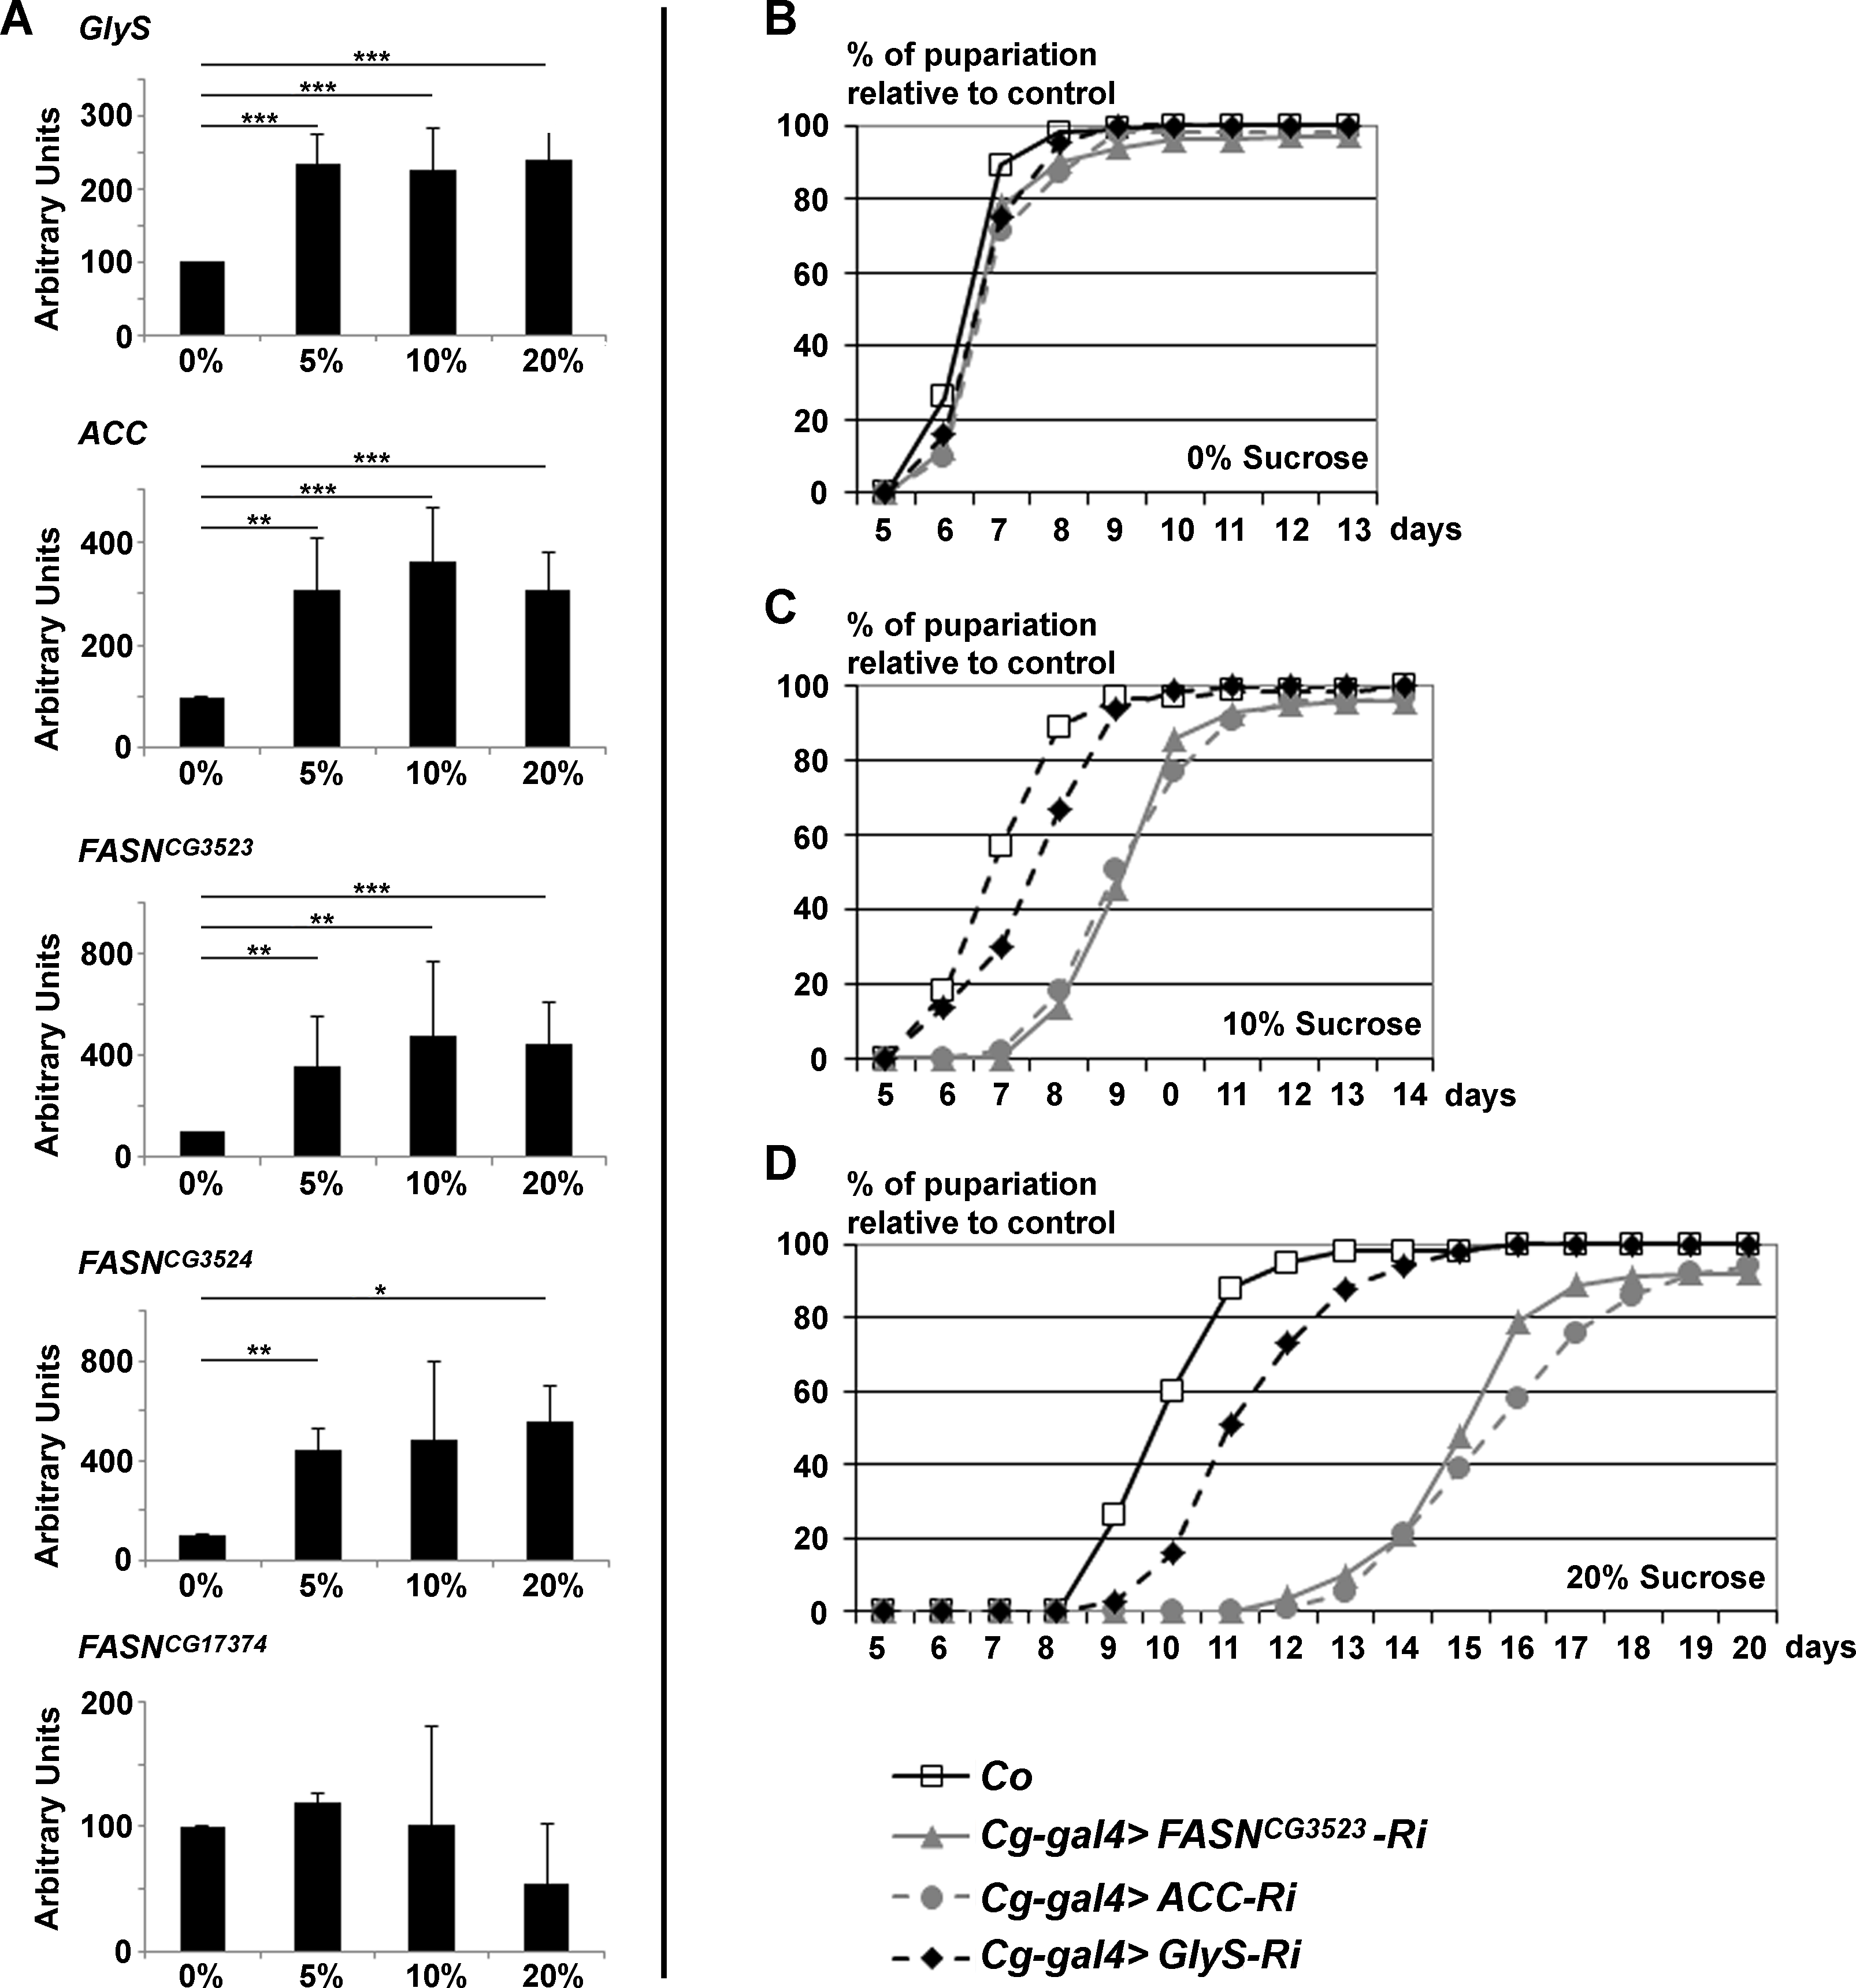 <i>GlyS</i>, <i>ACC and FASN</i><sup><i>CG3523</i></sup> expression is induced by and protects from dietary sugar.